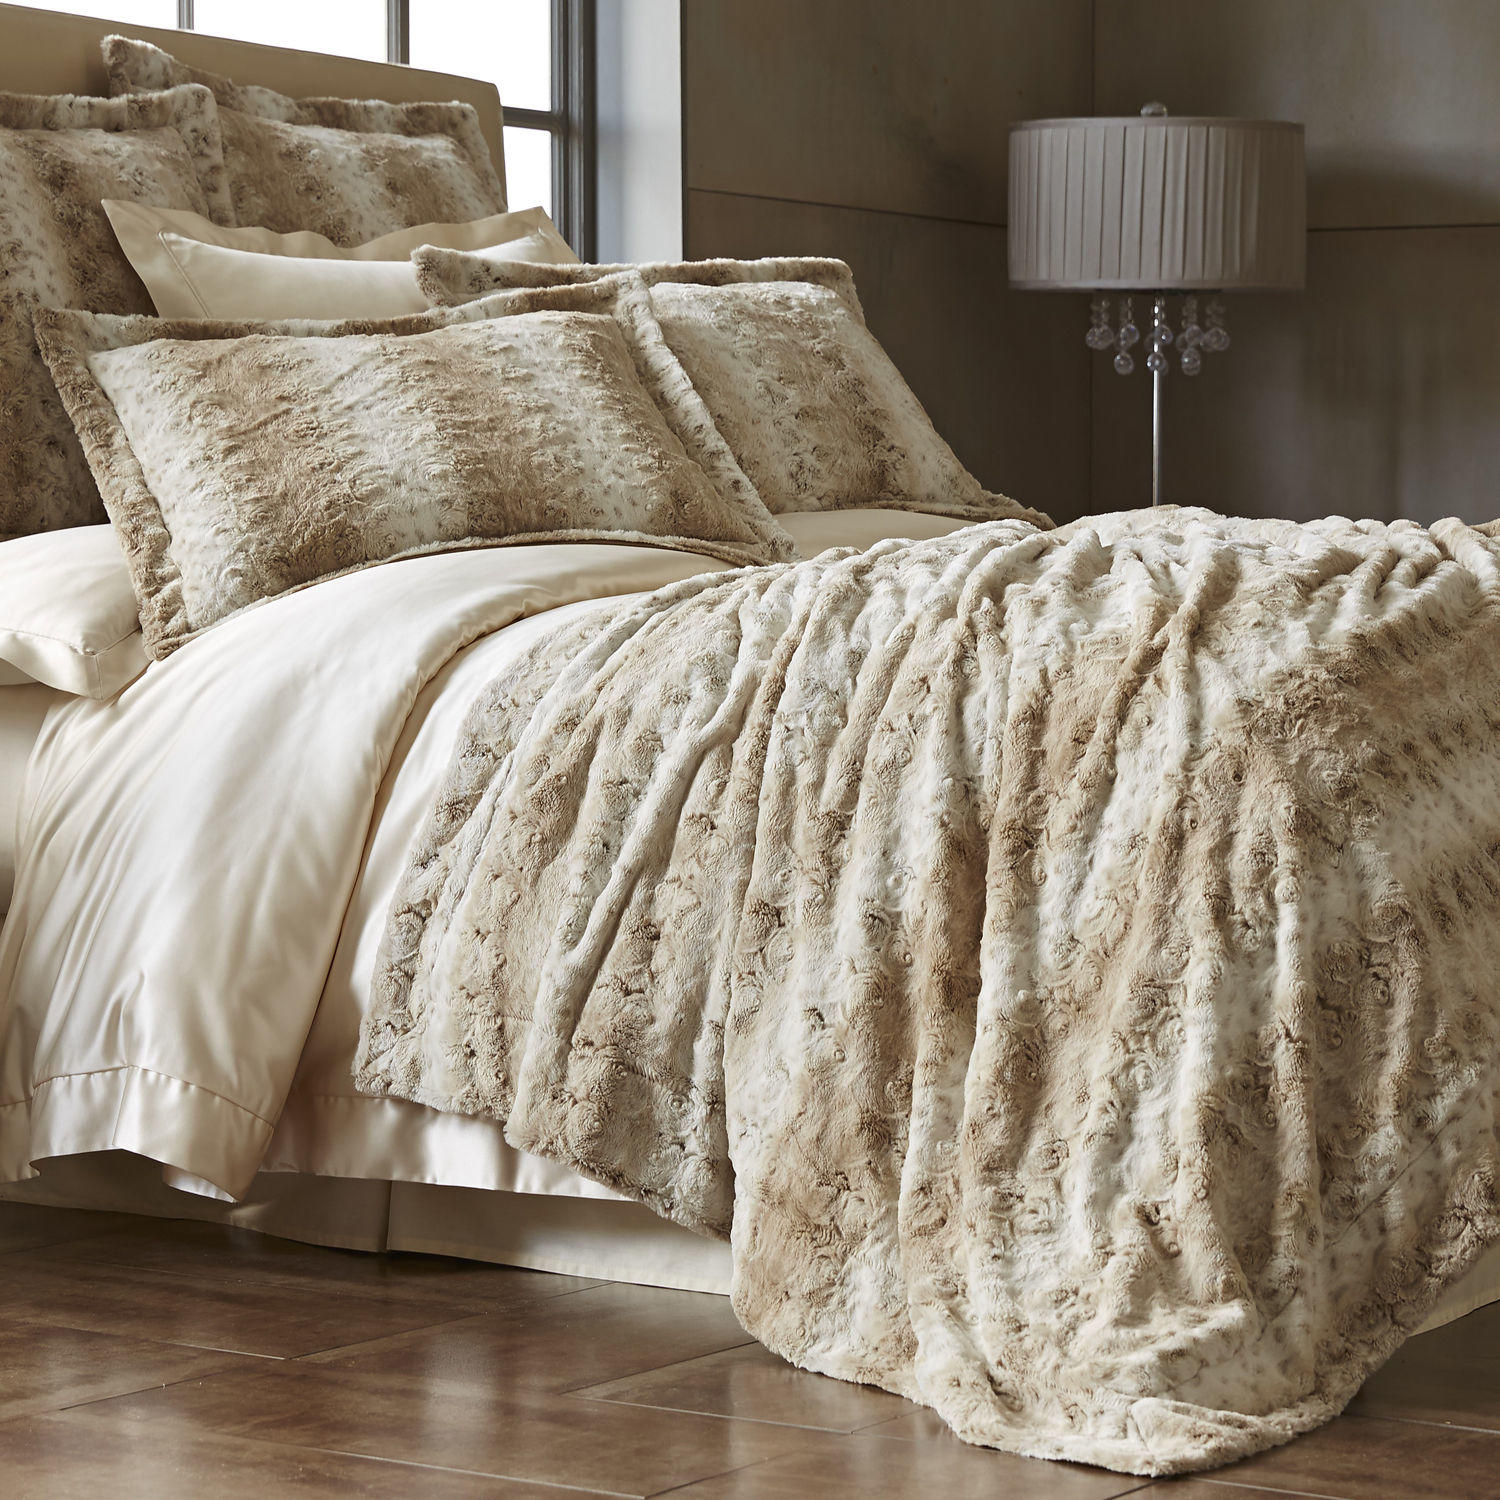 Snow Leopard Fuzzy Blanket Amp Shams From Pier 1 Imports